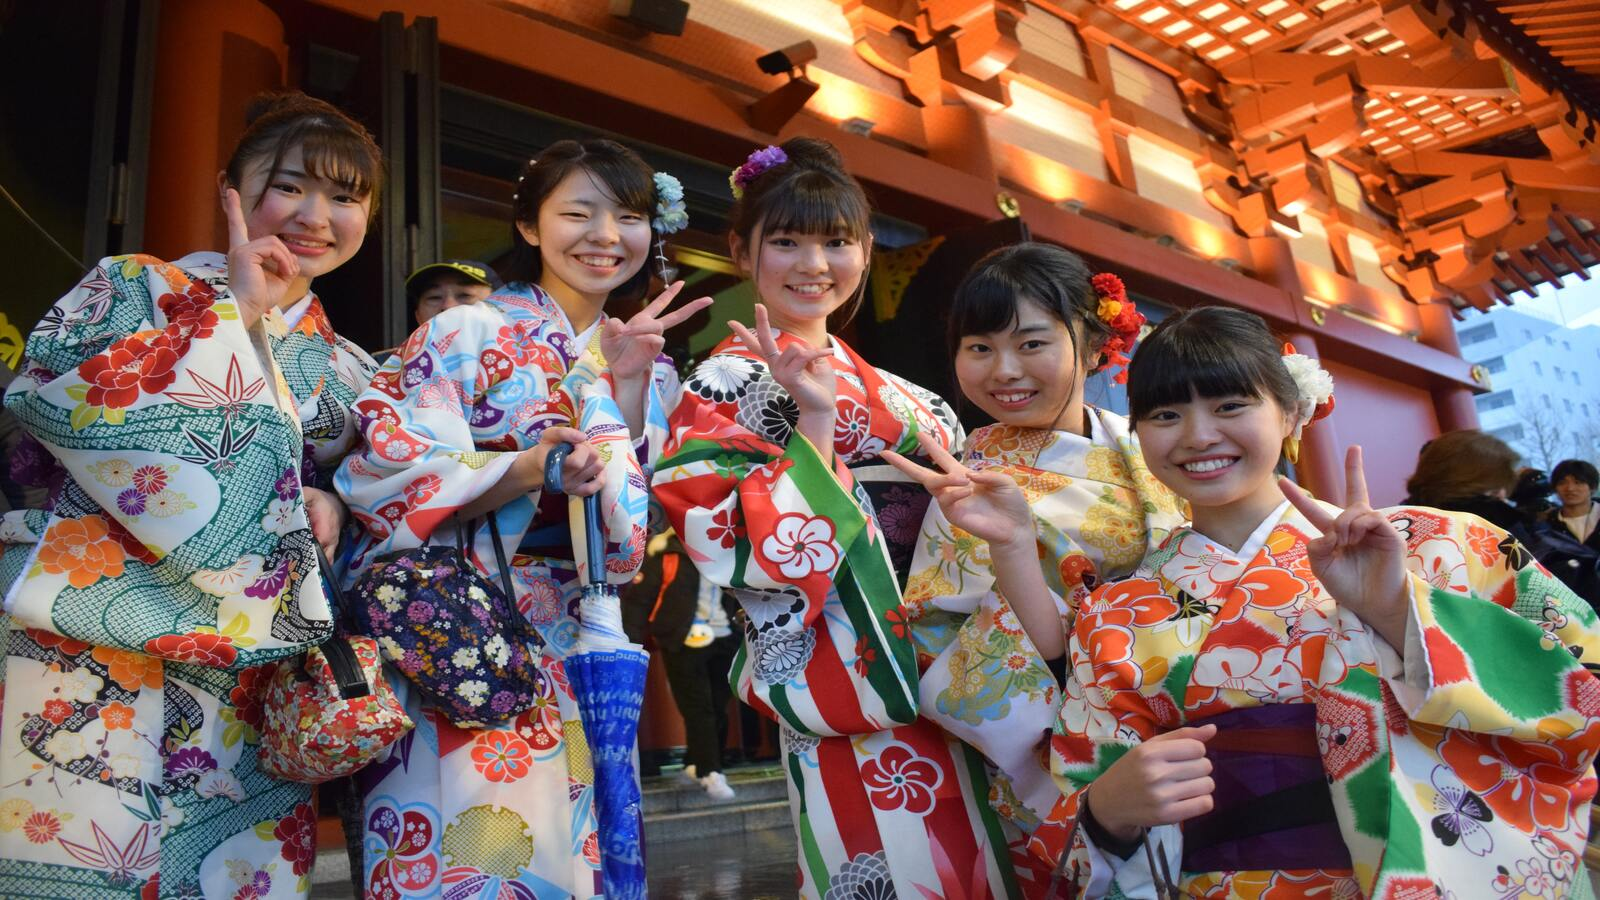 11 Easy Songs in Japanese to Have Fun and Learn